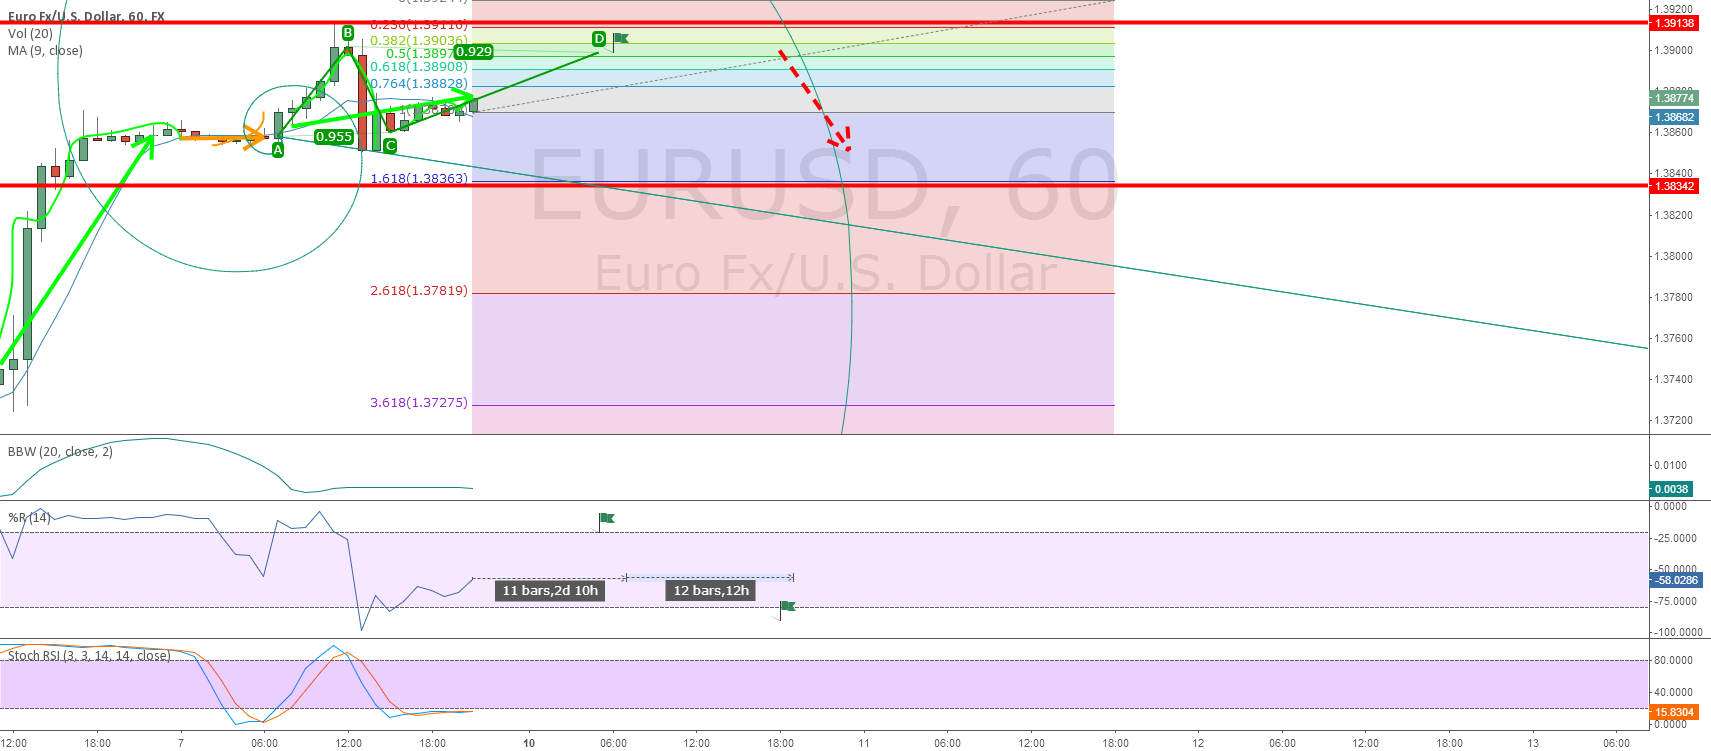 EURUSD will fall down a little in the next days?